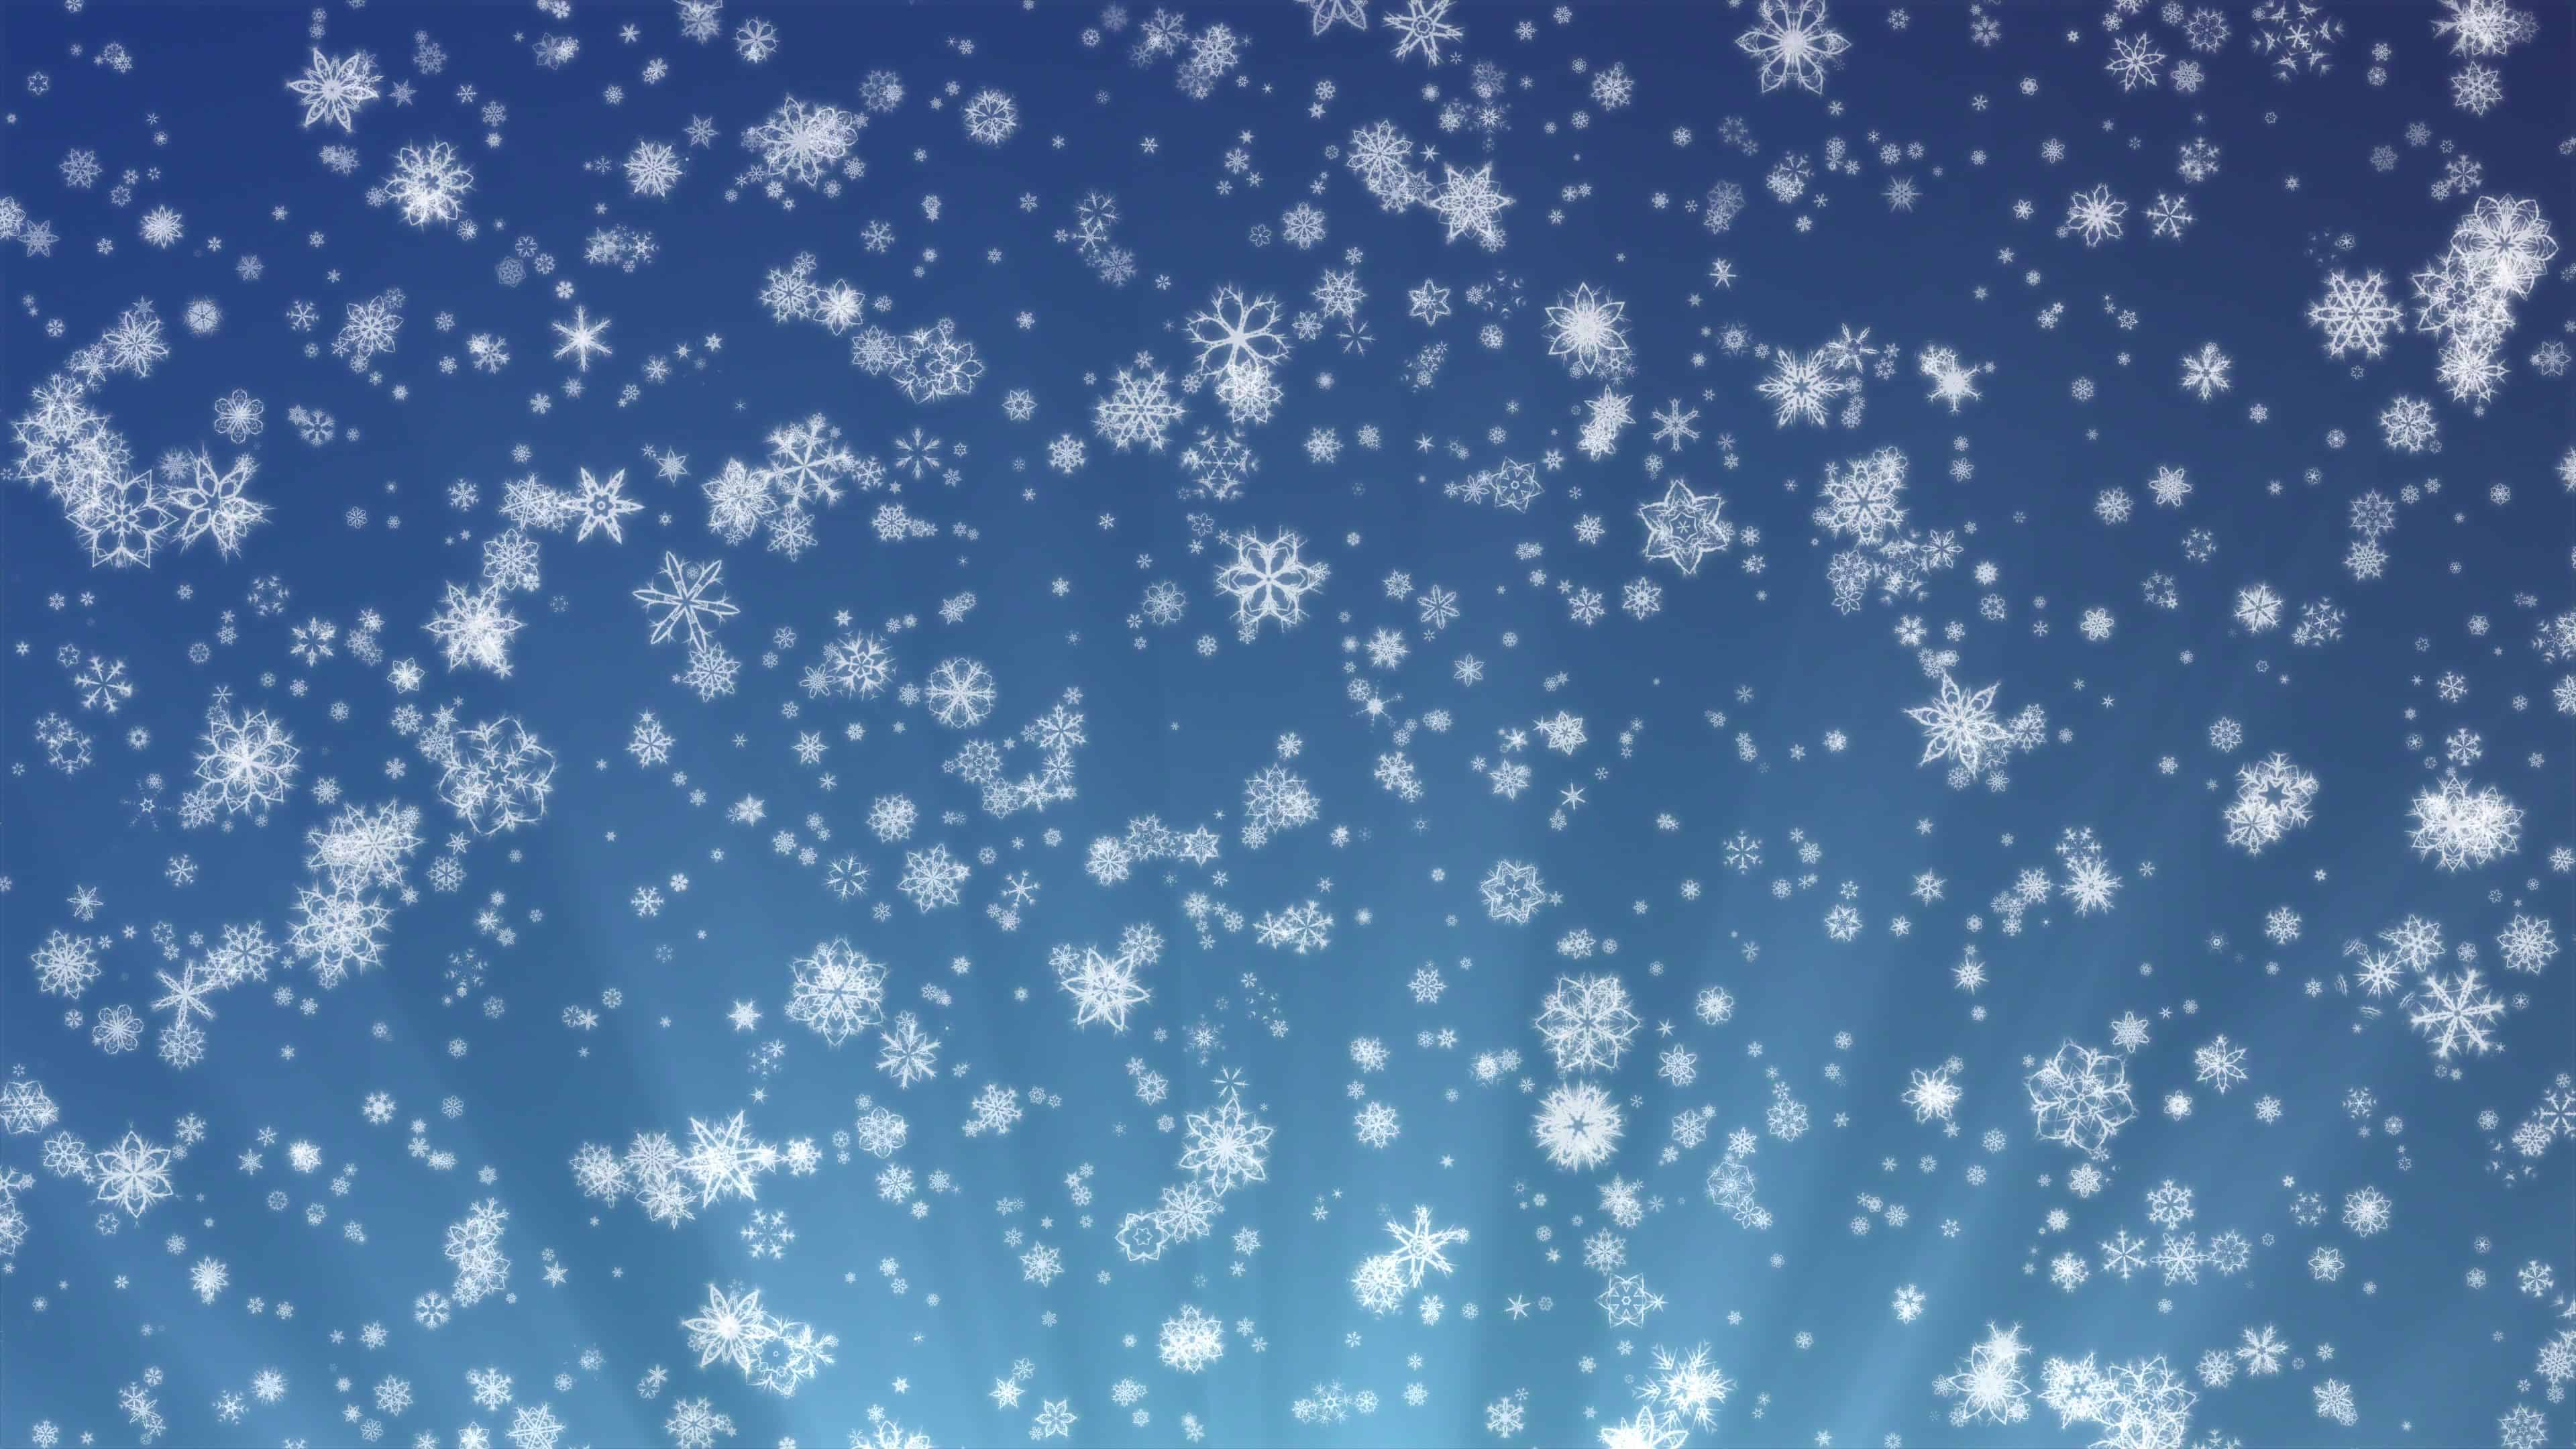 Animated Snow Falling Wallpaper Free Download Snowflakes On A Blue Background Uhd 4k Wallpaper Pixelz